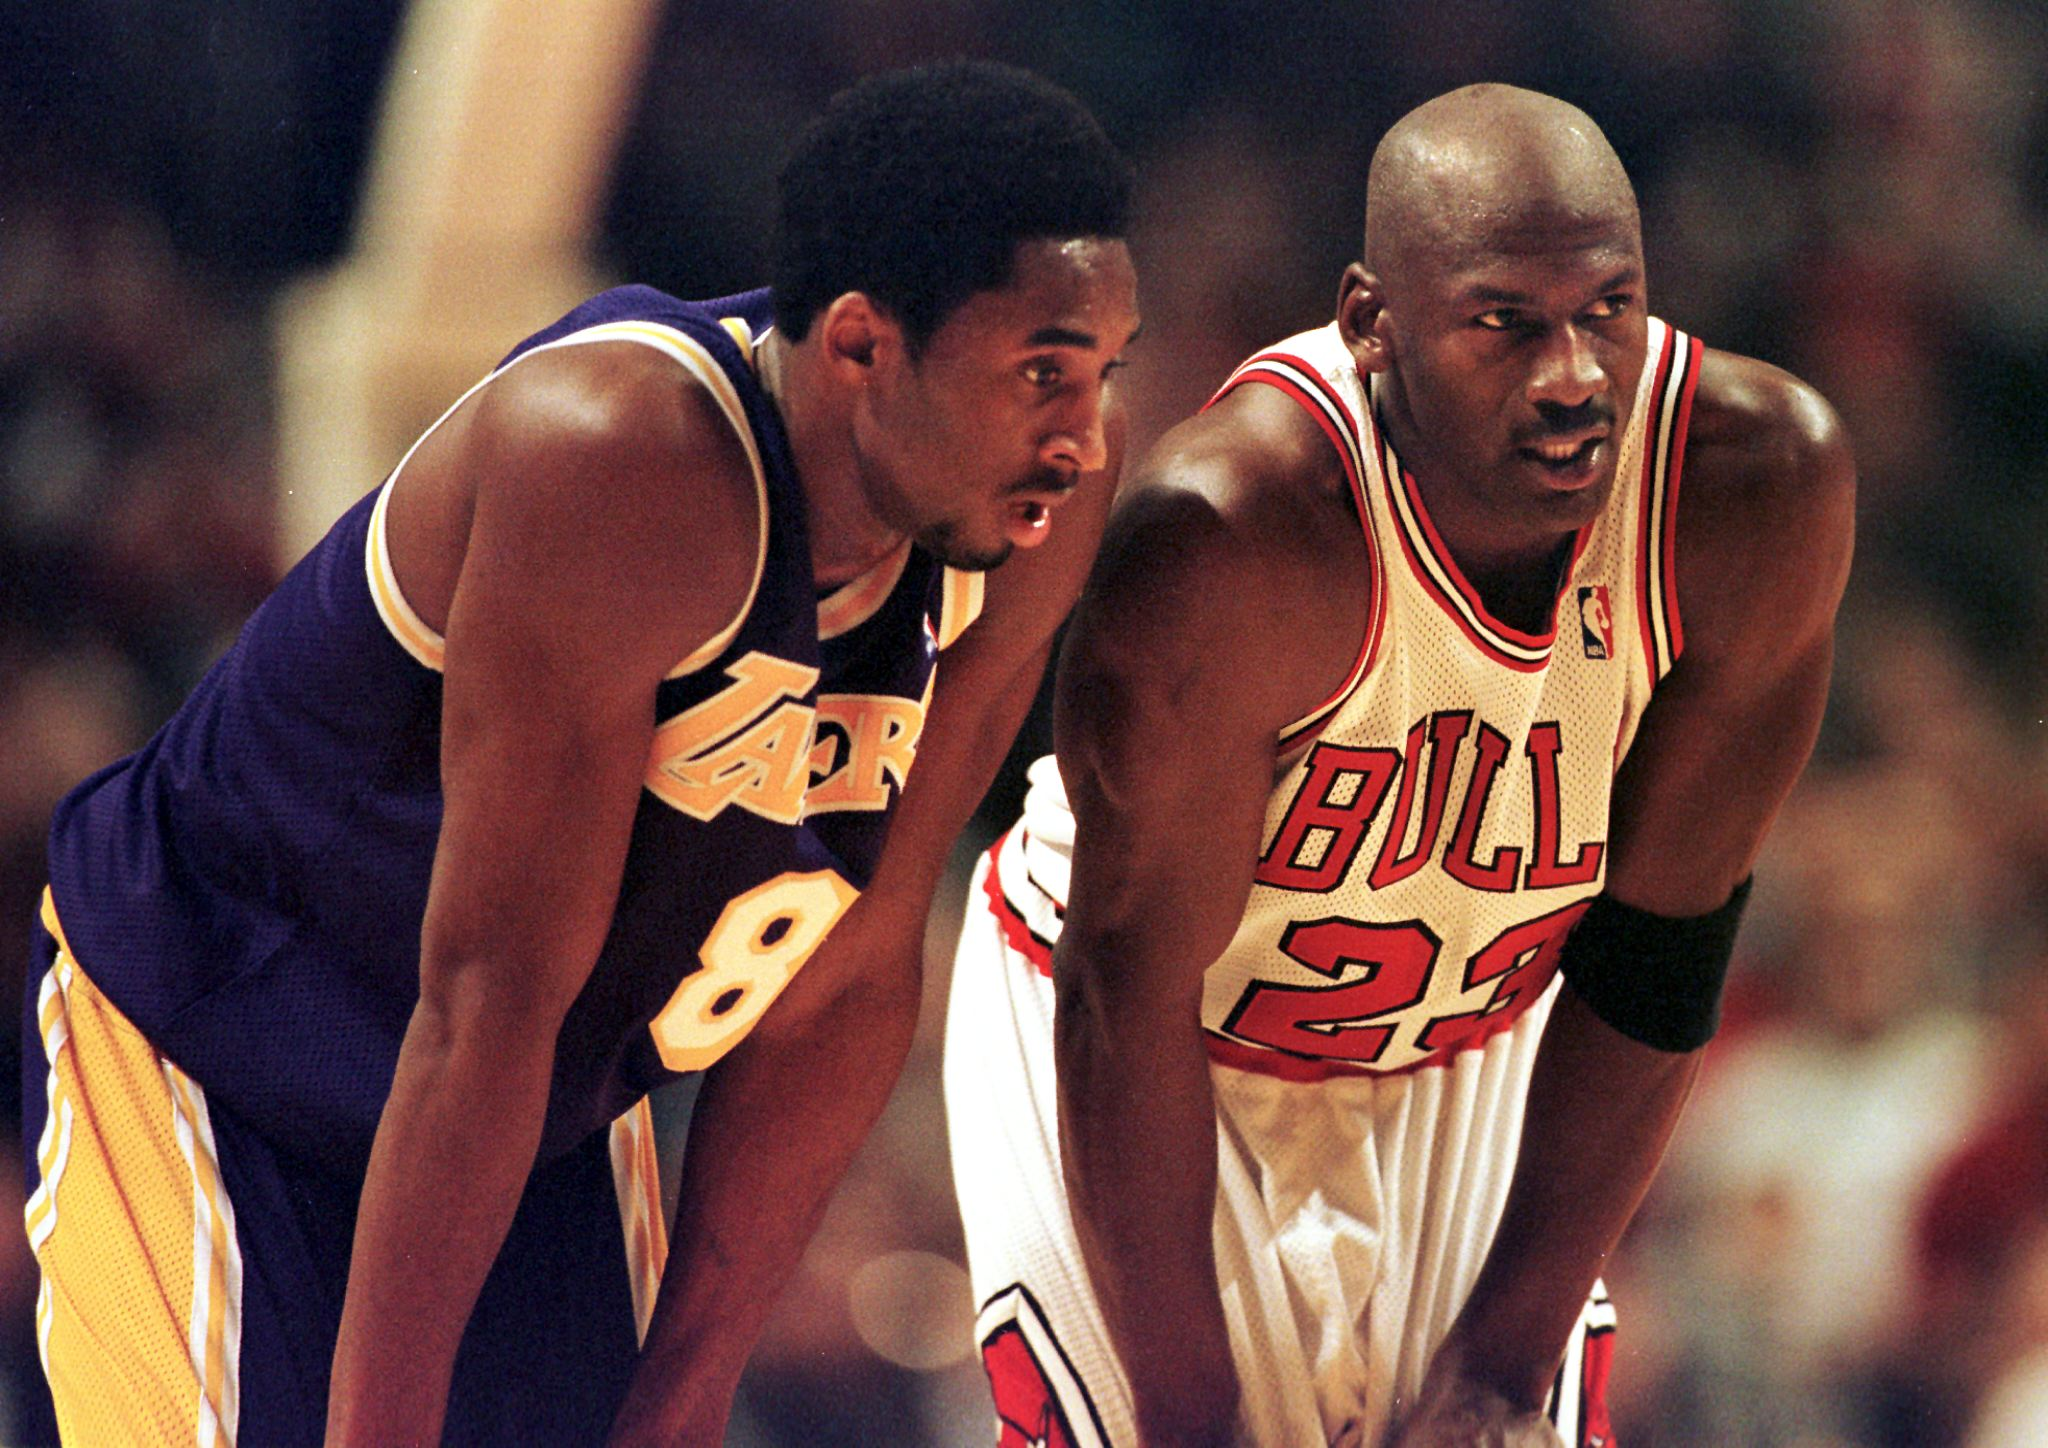 The Lakers' Kobe Bryant (left) patterned his game after the Bulls' Michael Jordan.